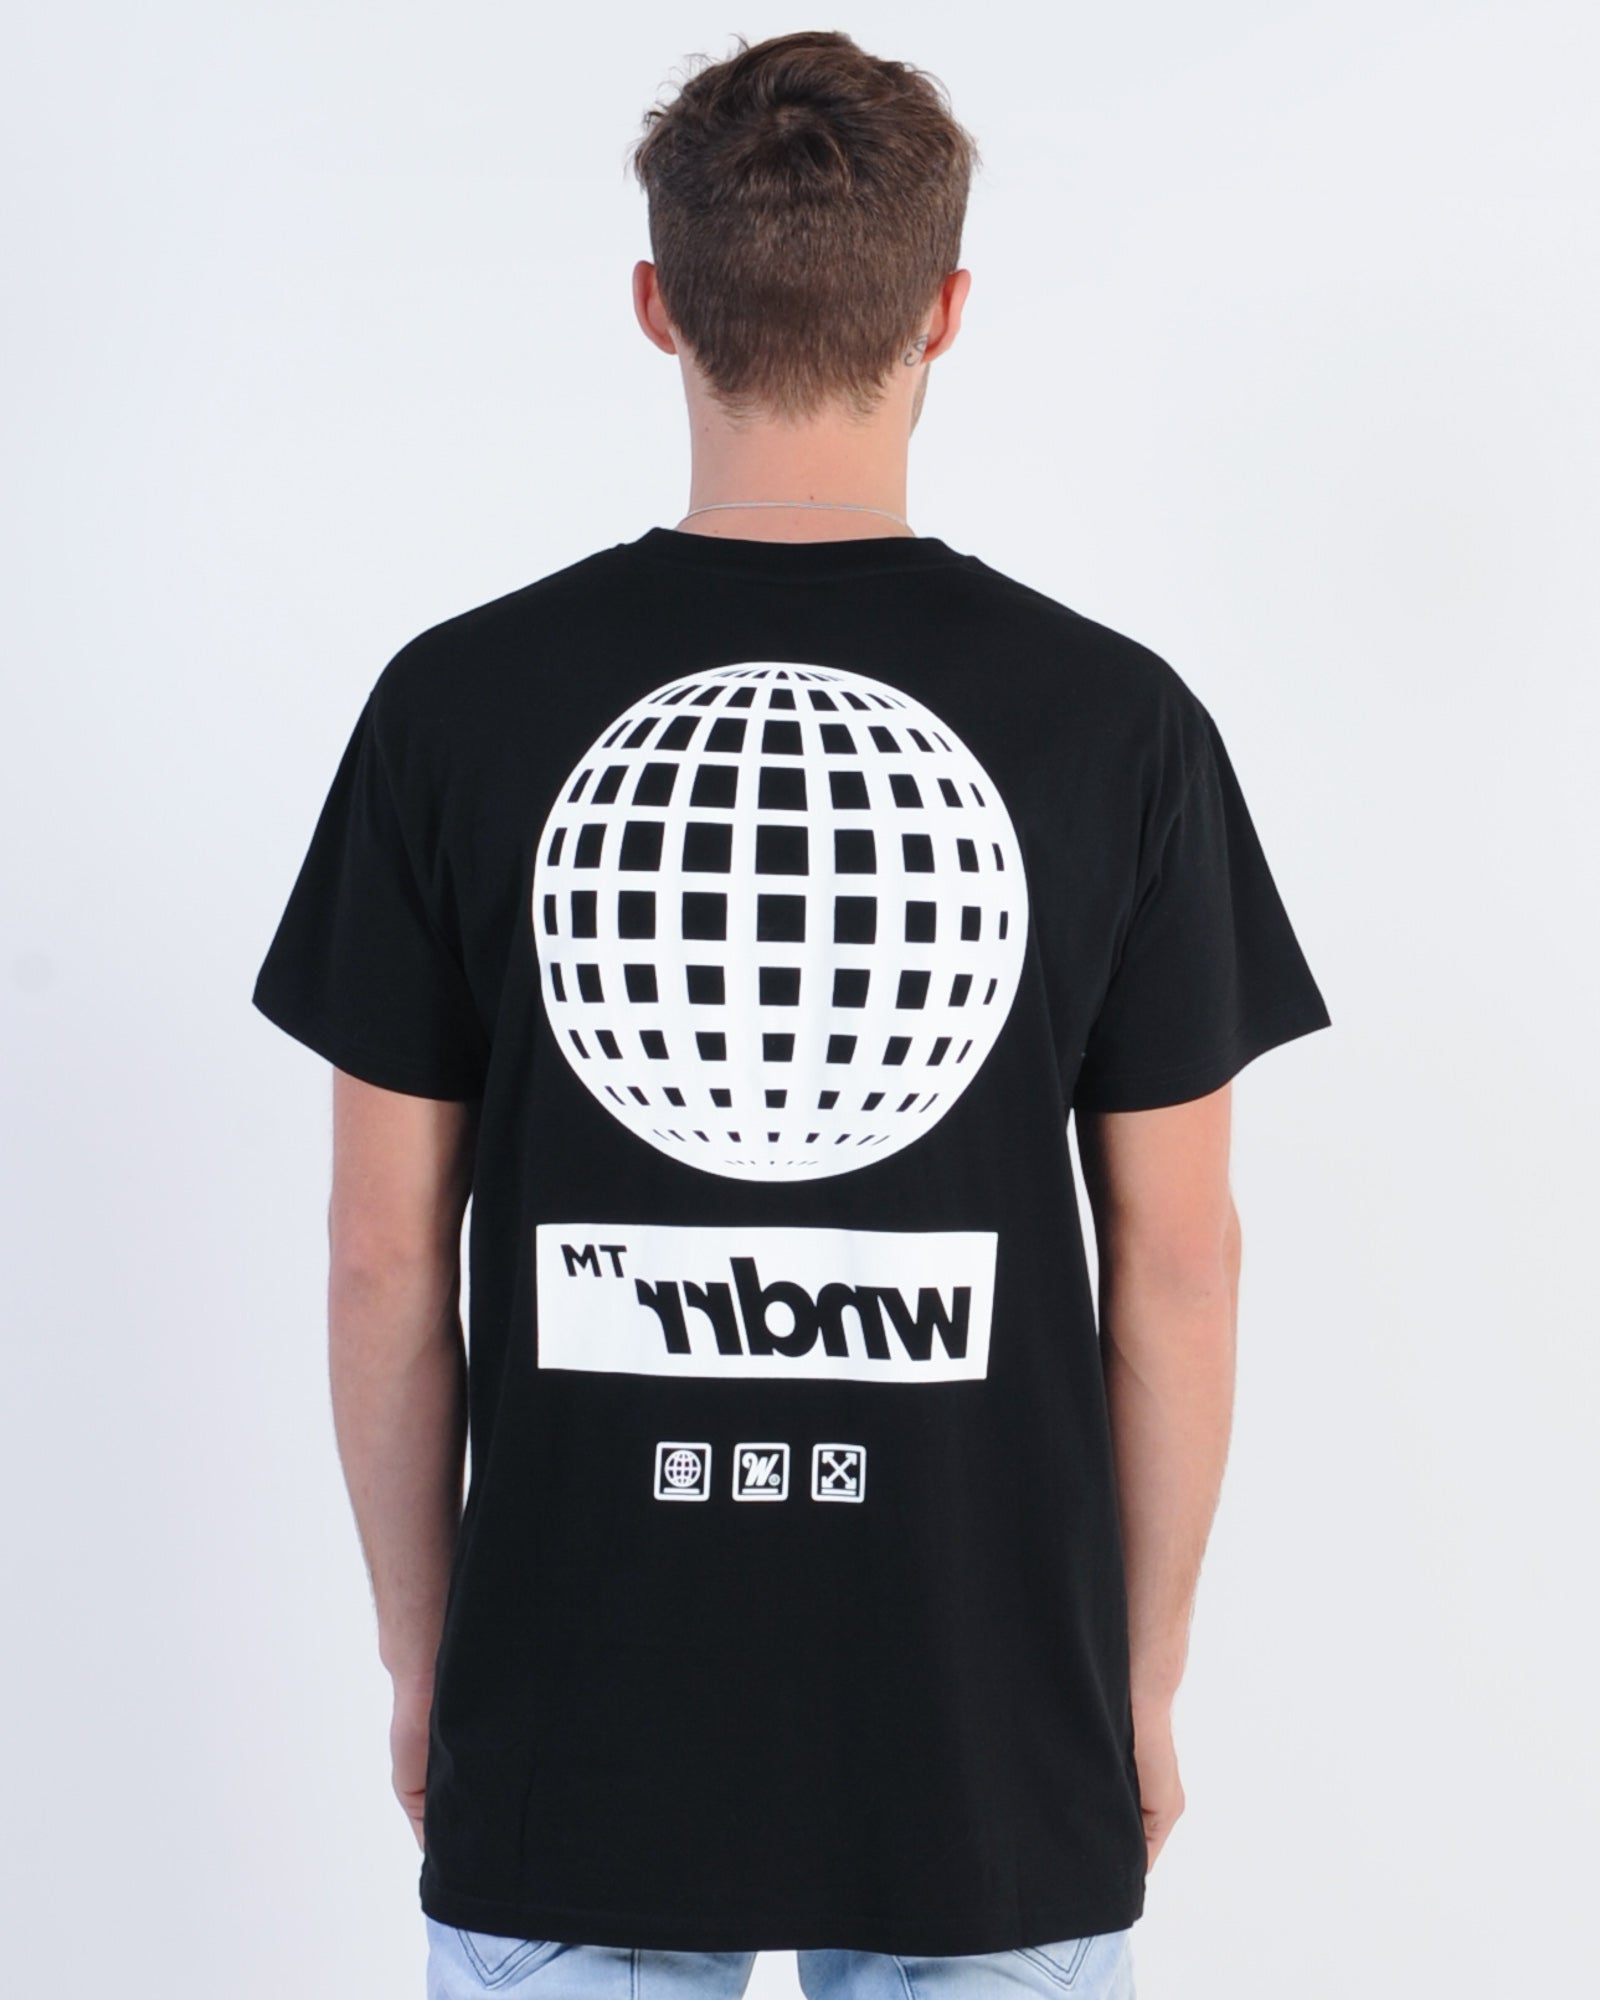 Wndrr Original Custom Fit Tee - Black